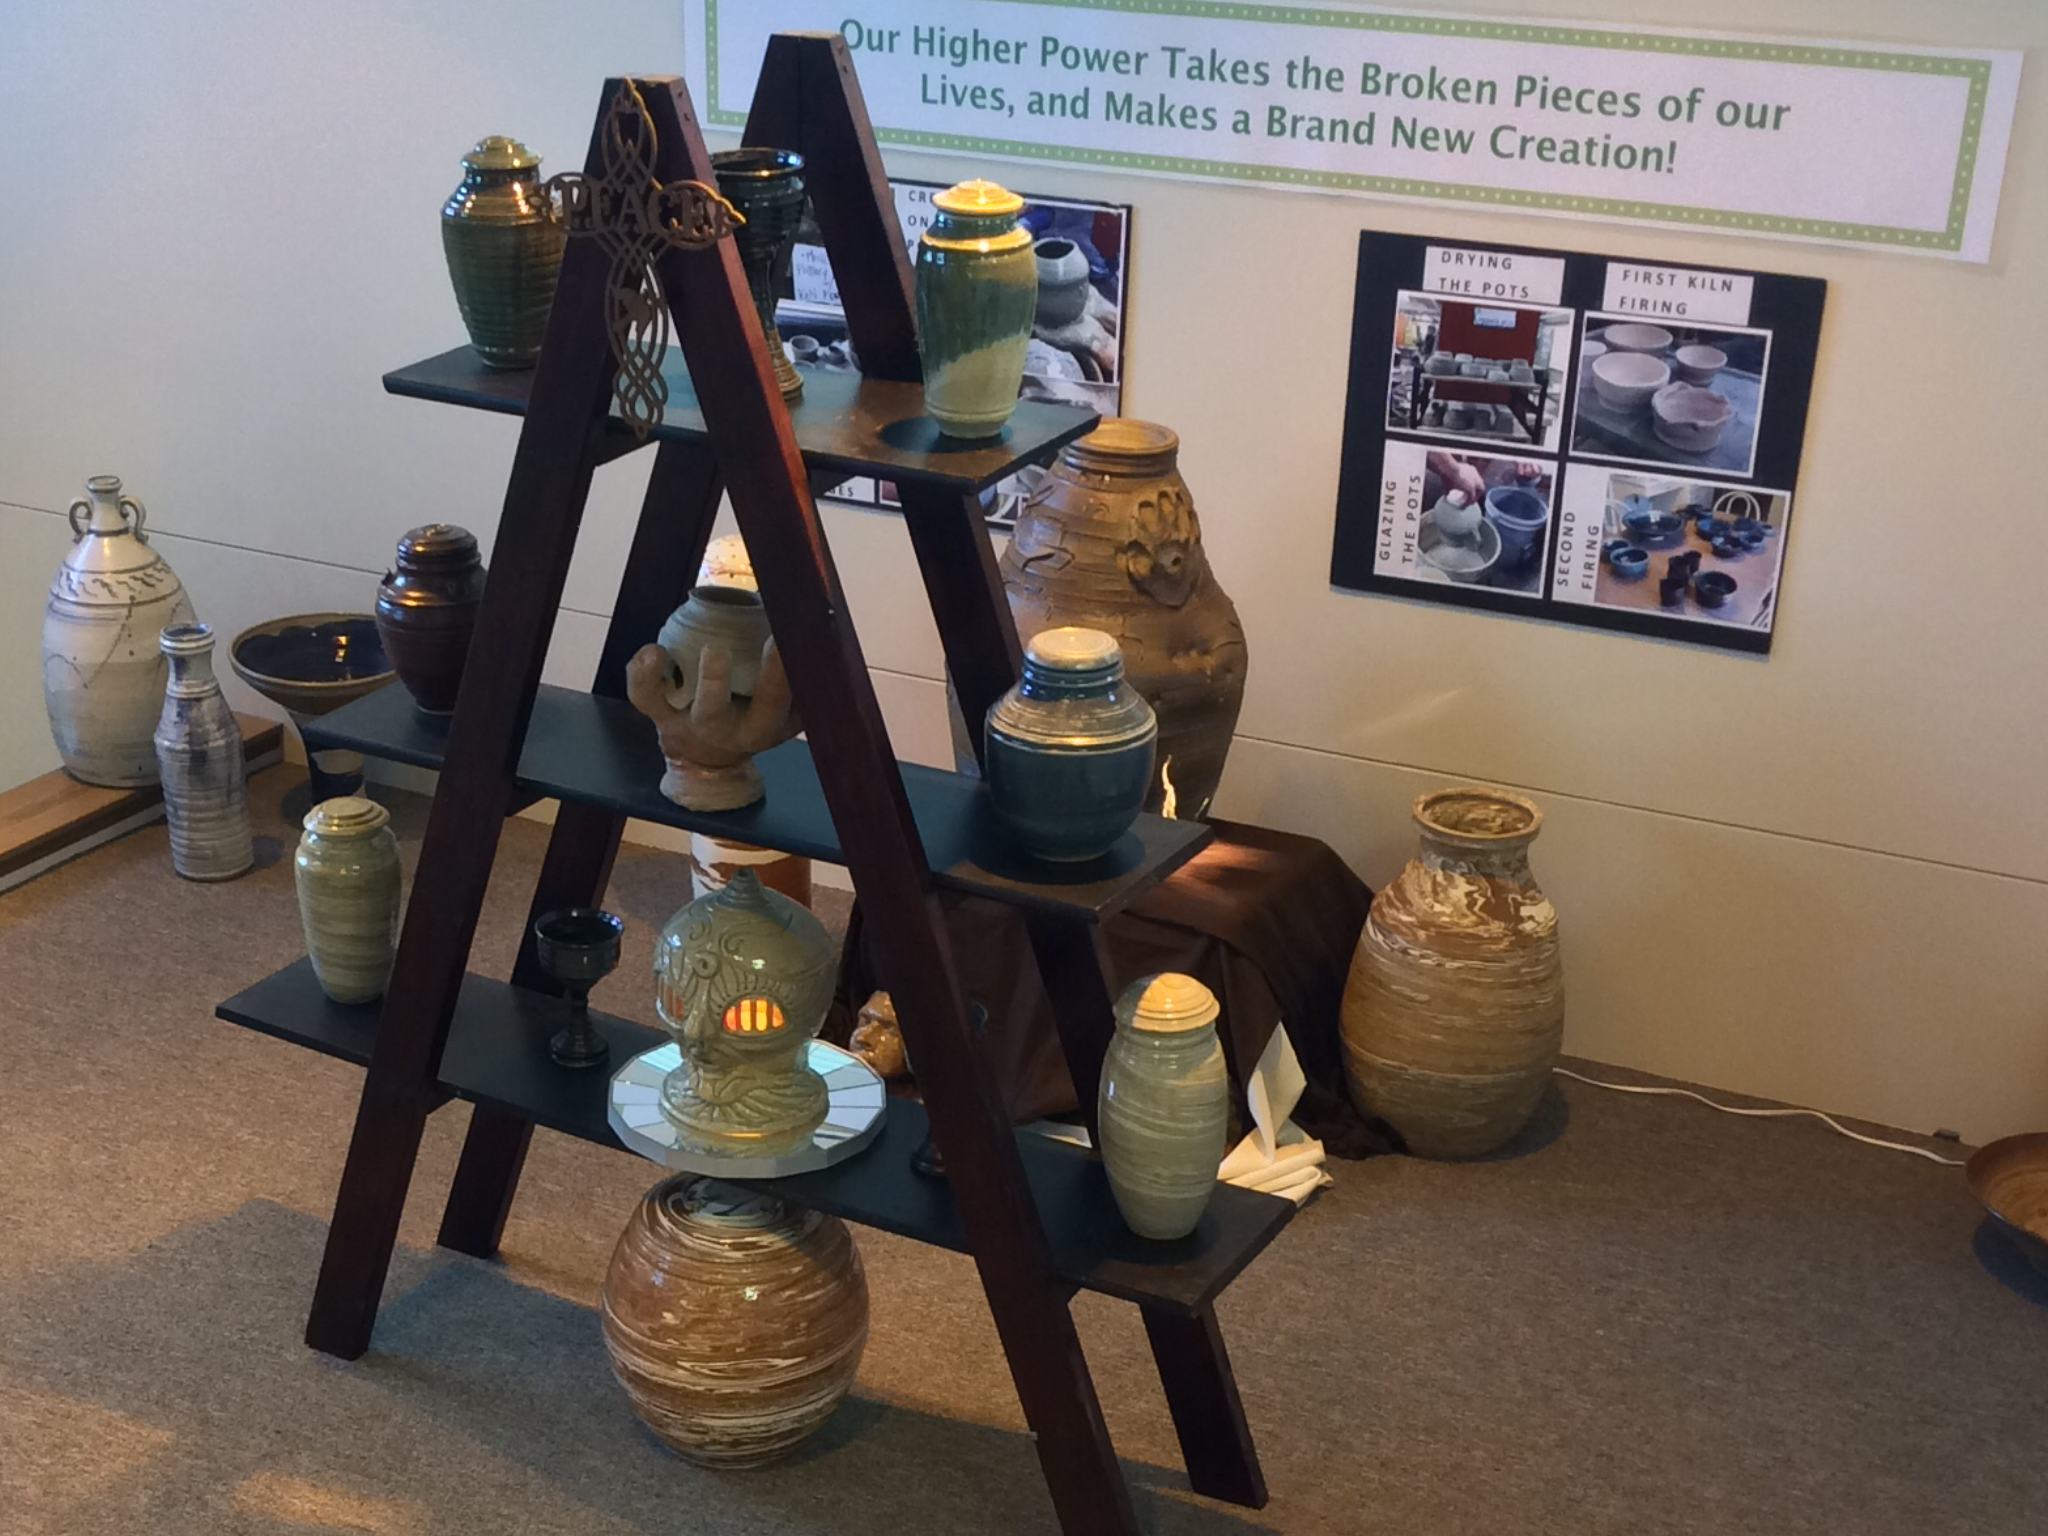 Pottery Display at Recovery Plus Treatment Facility, St. Cloud, MN